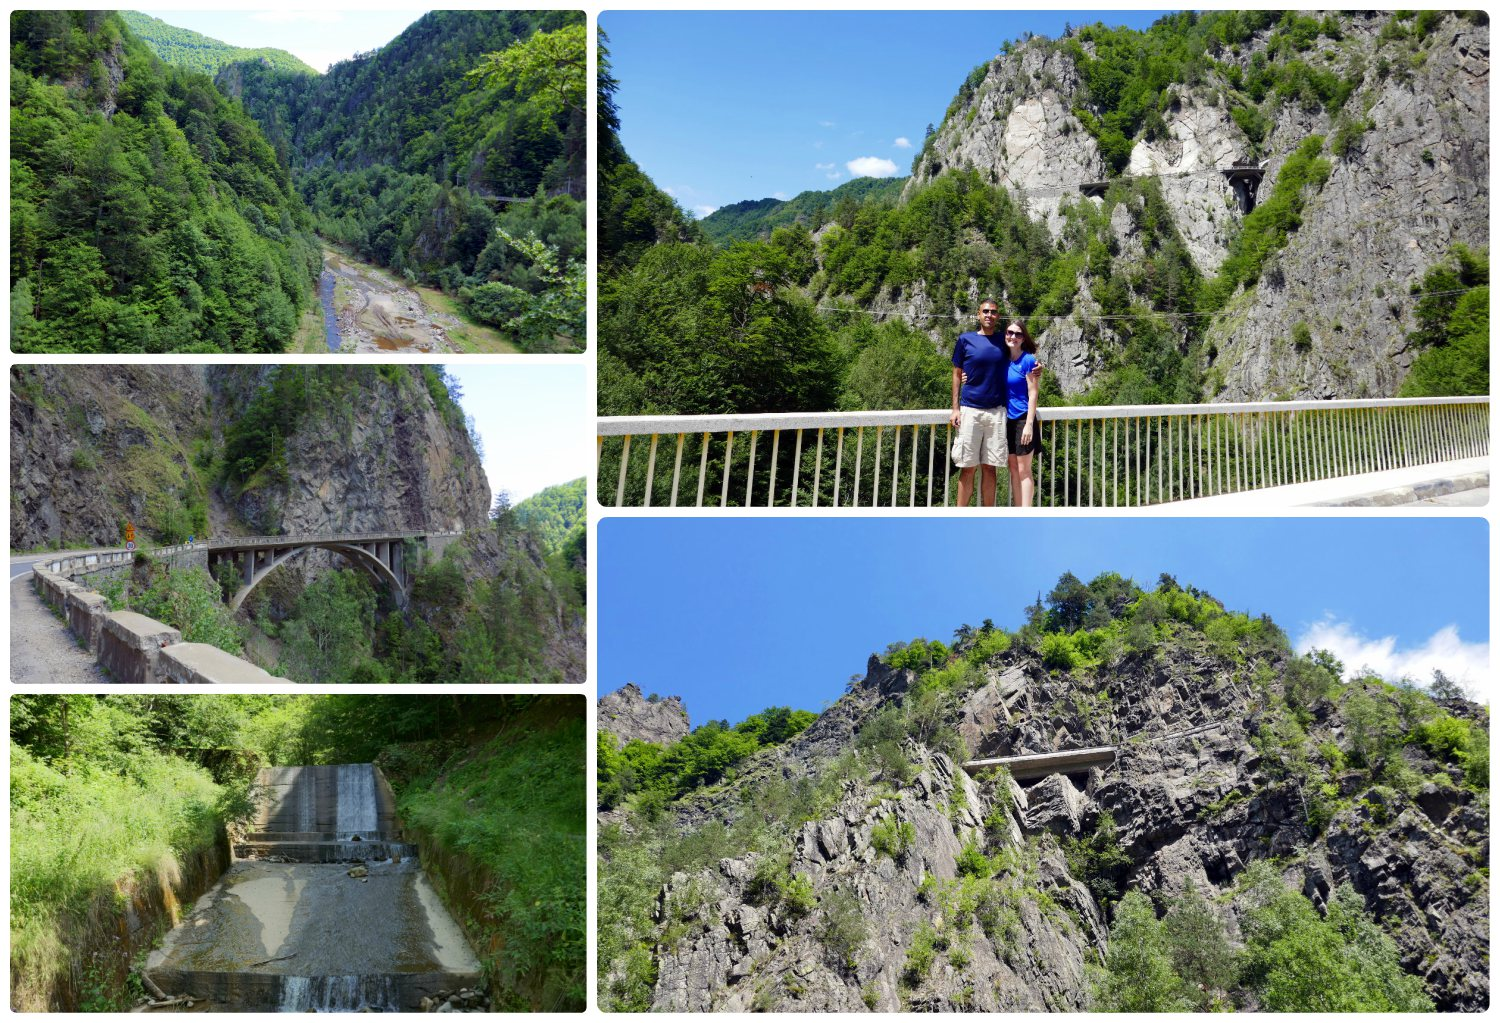 The start of the Transfagarasan Highway is a beautiful drive, full of rock faced mountains, bridges, streams, and tunnels!